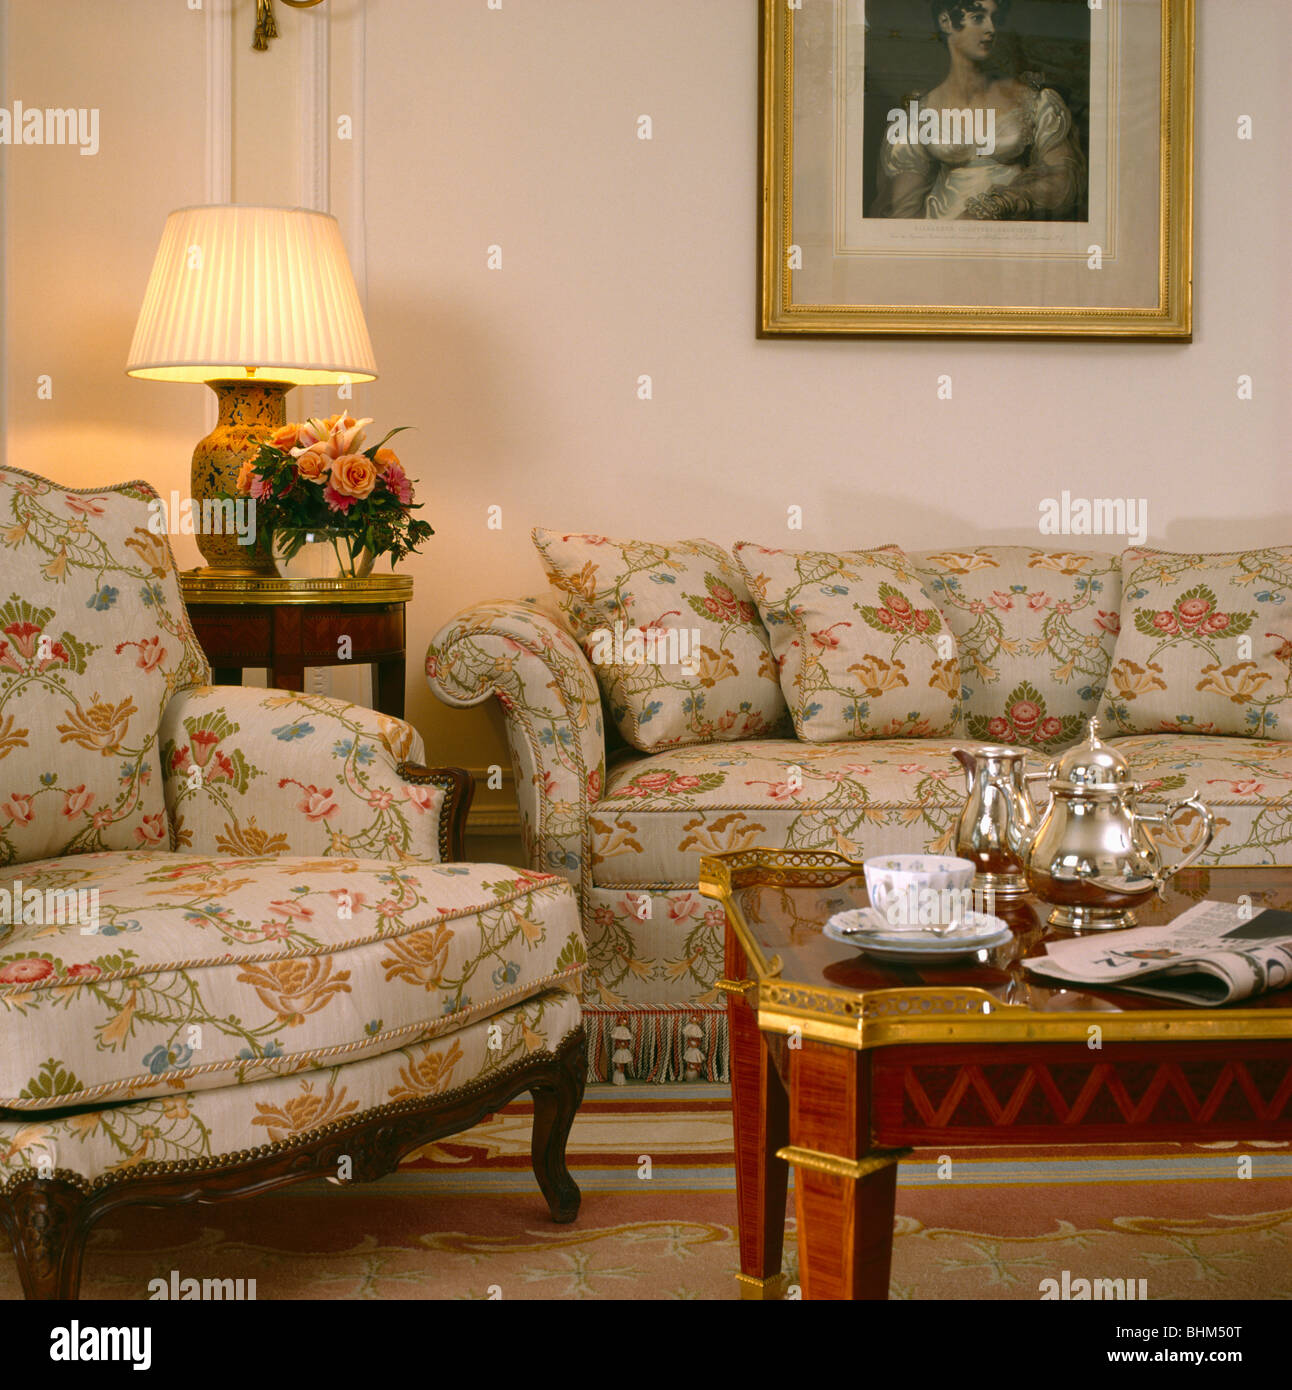 Lighted lamp on small table between floral patterned sofa and ...